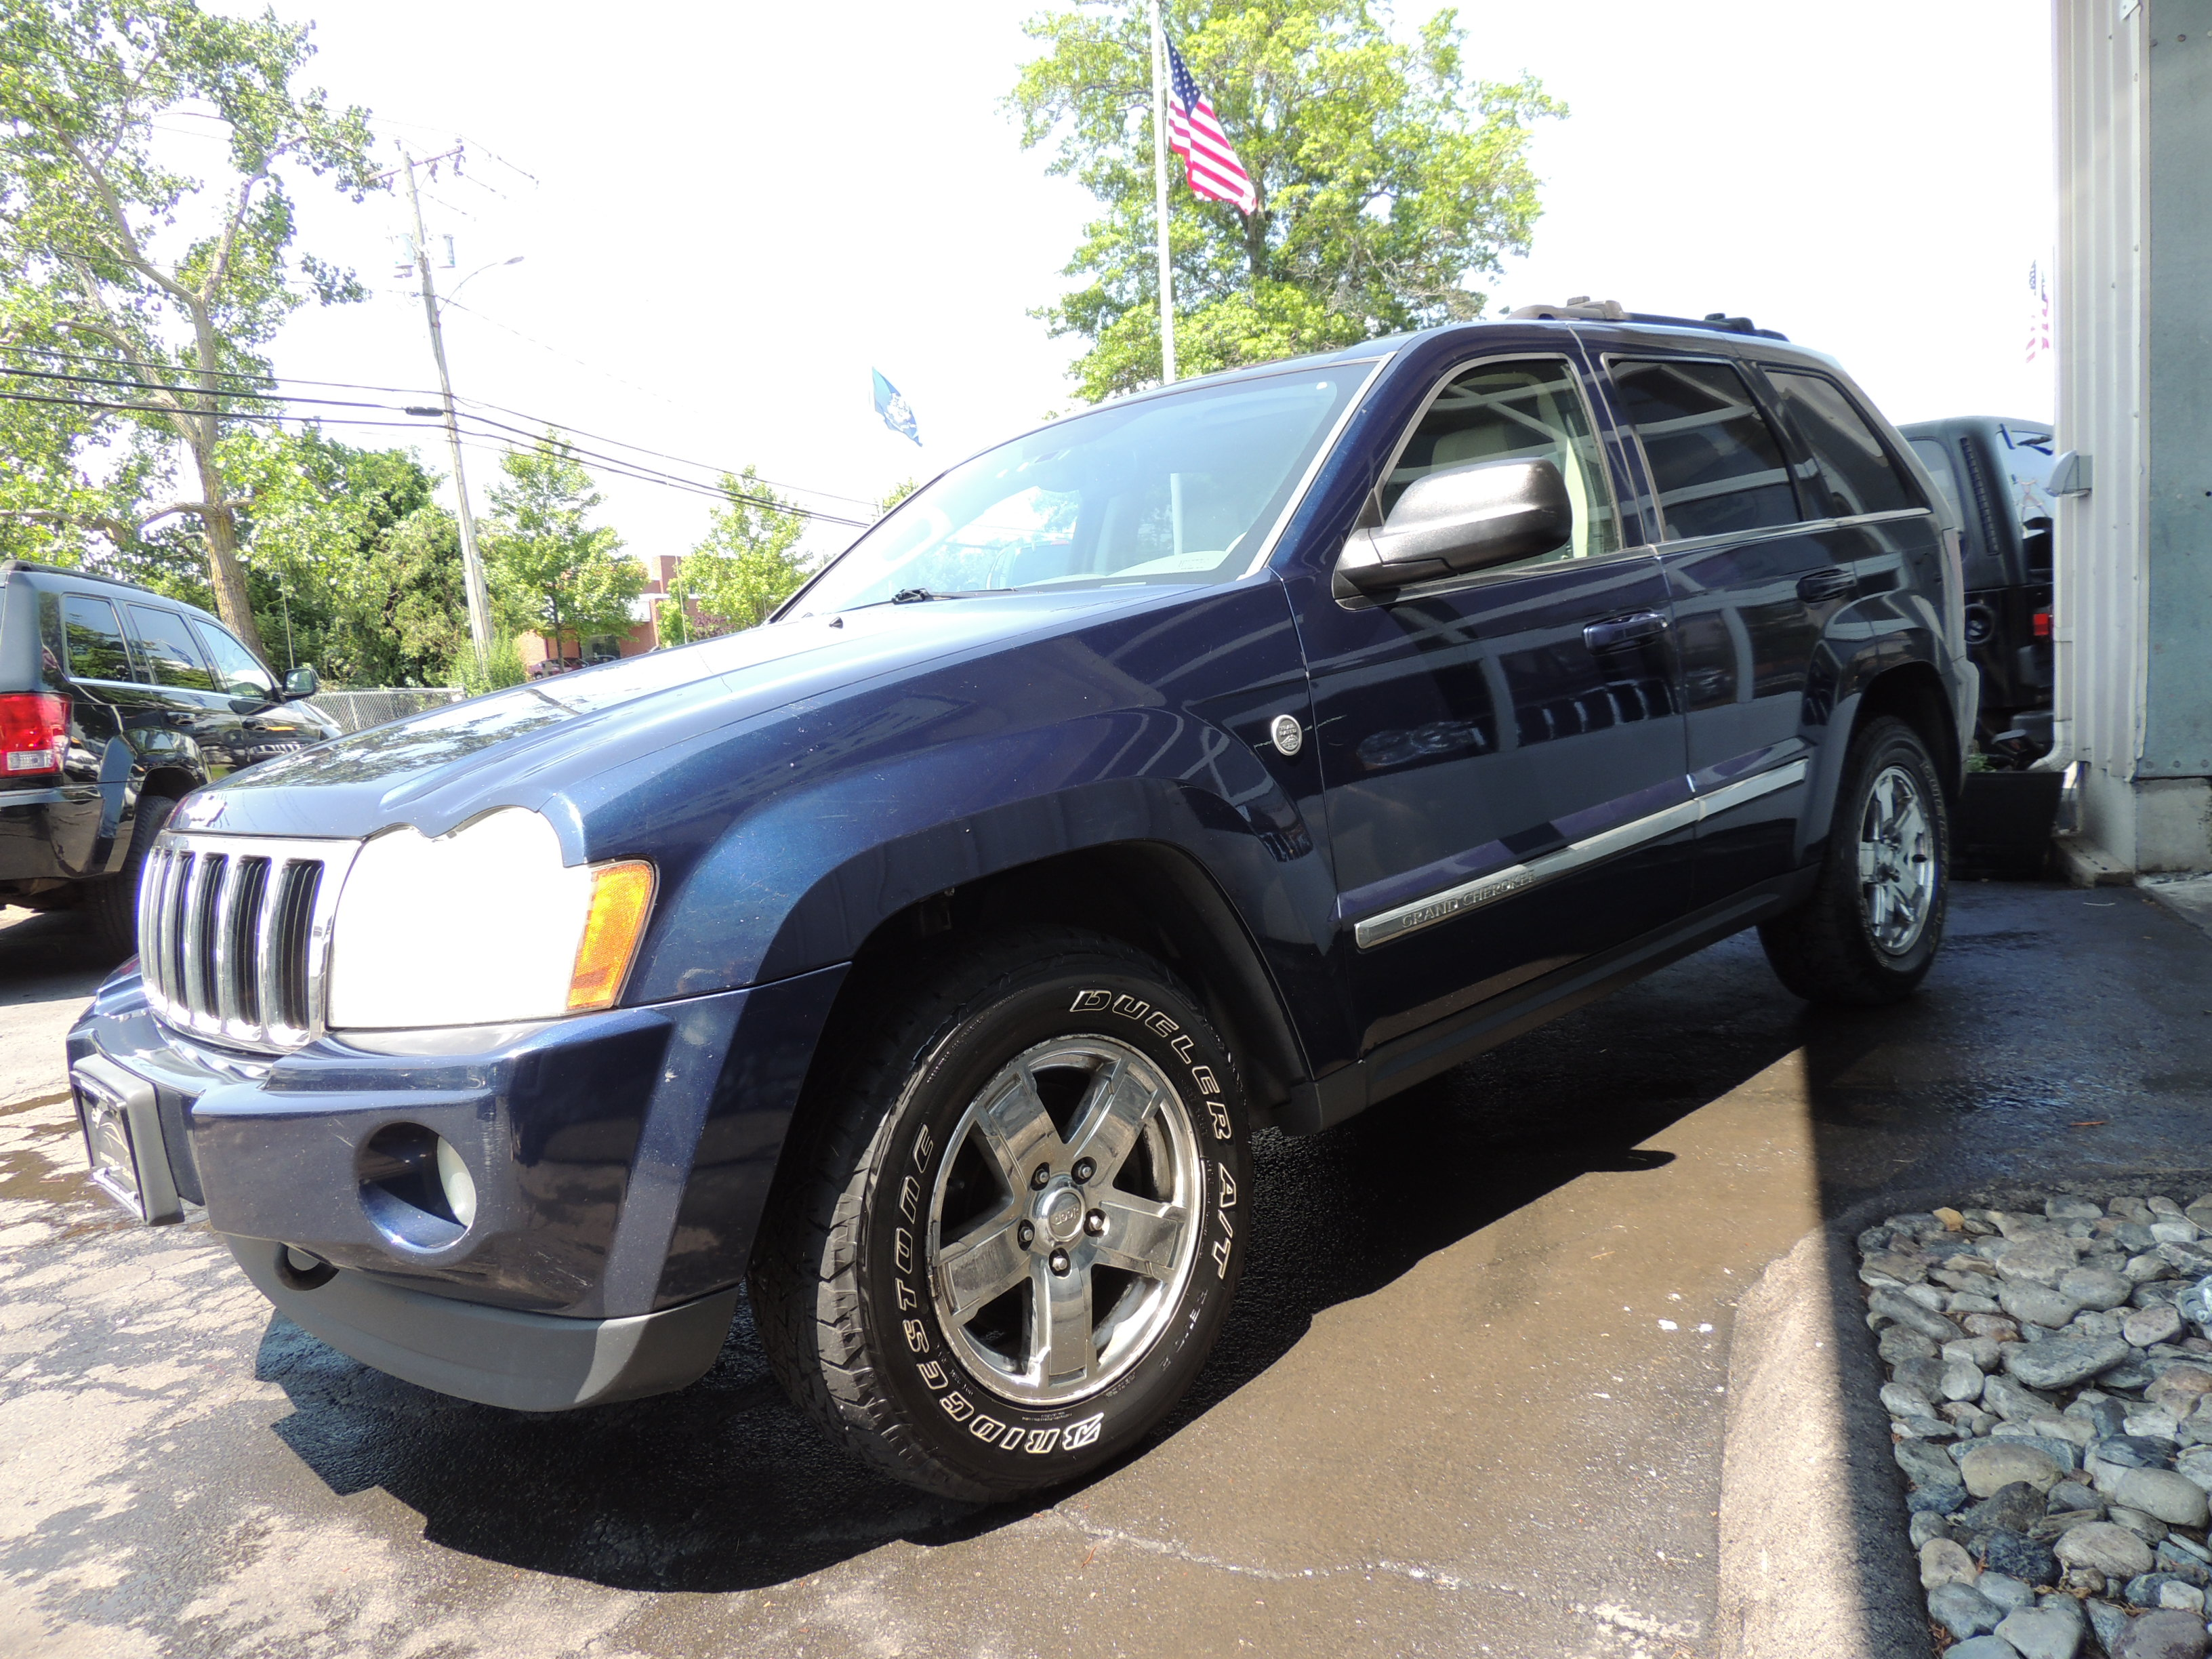 2005 jeep grand cherokee limited 5.7 hemi | shoreline auto s